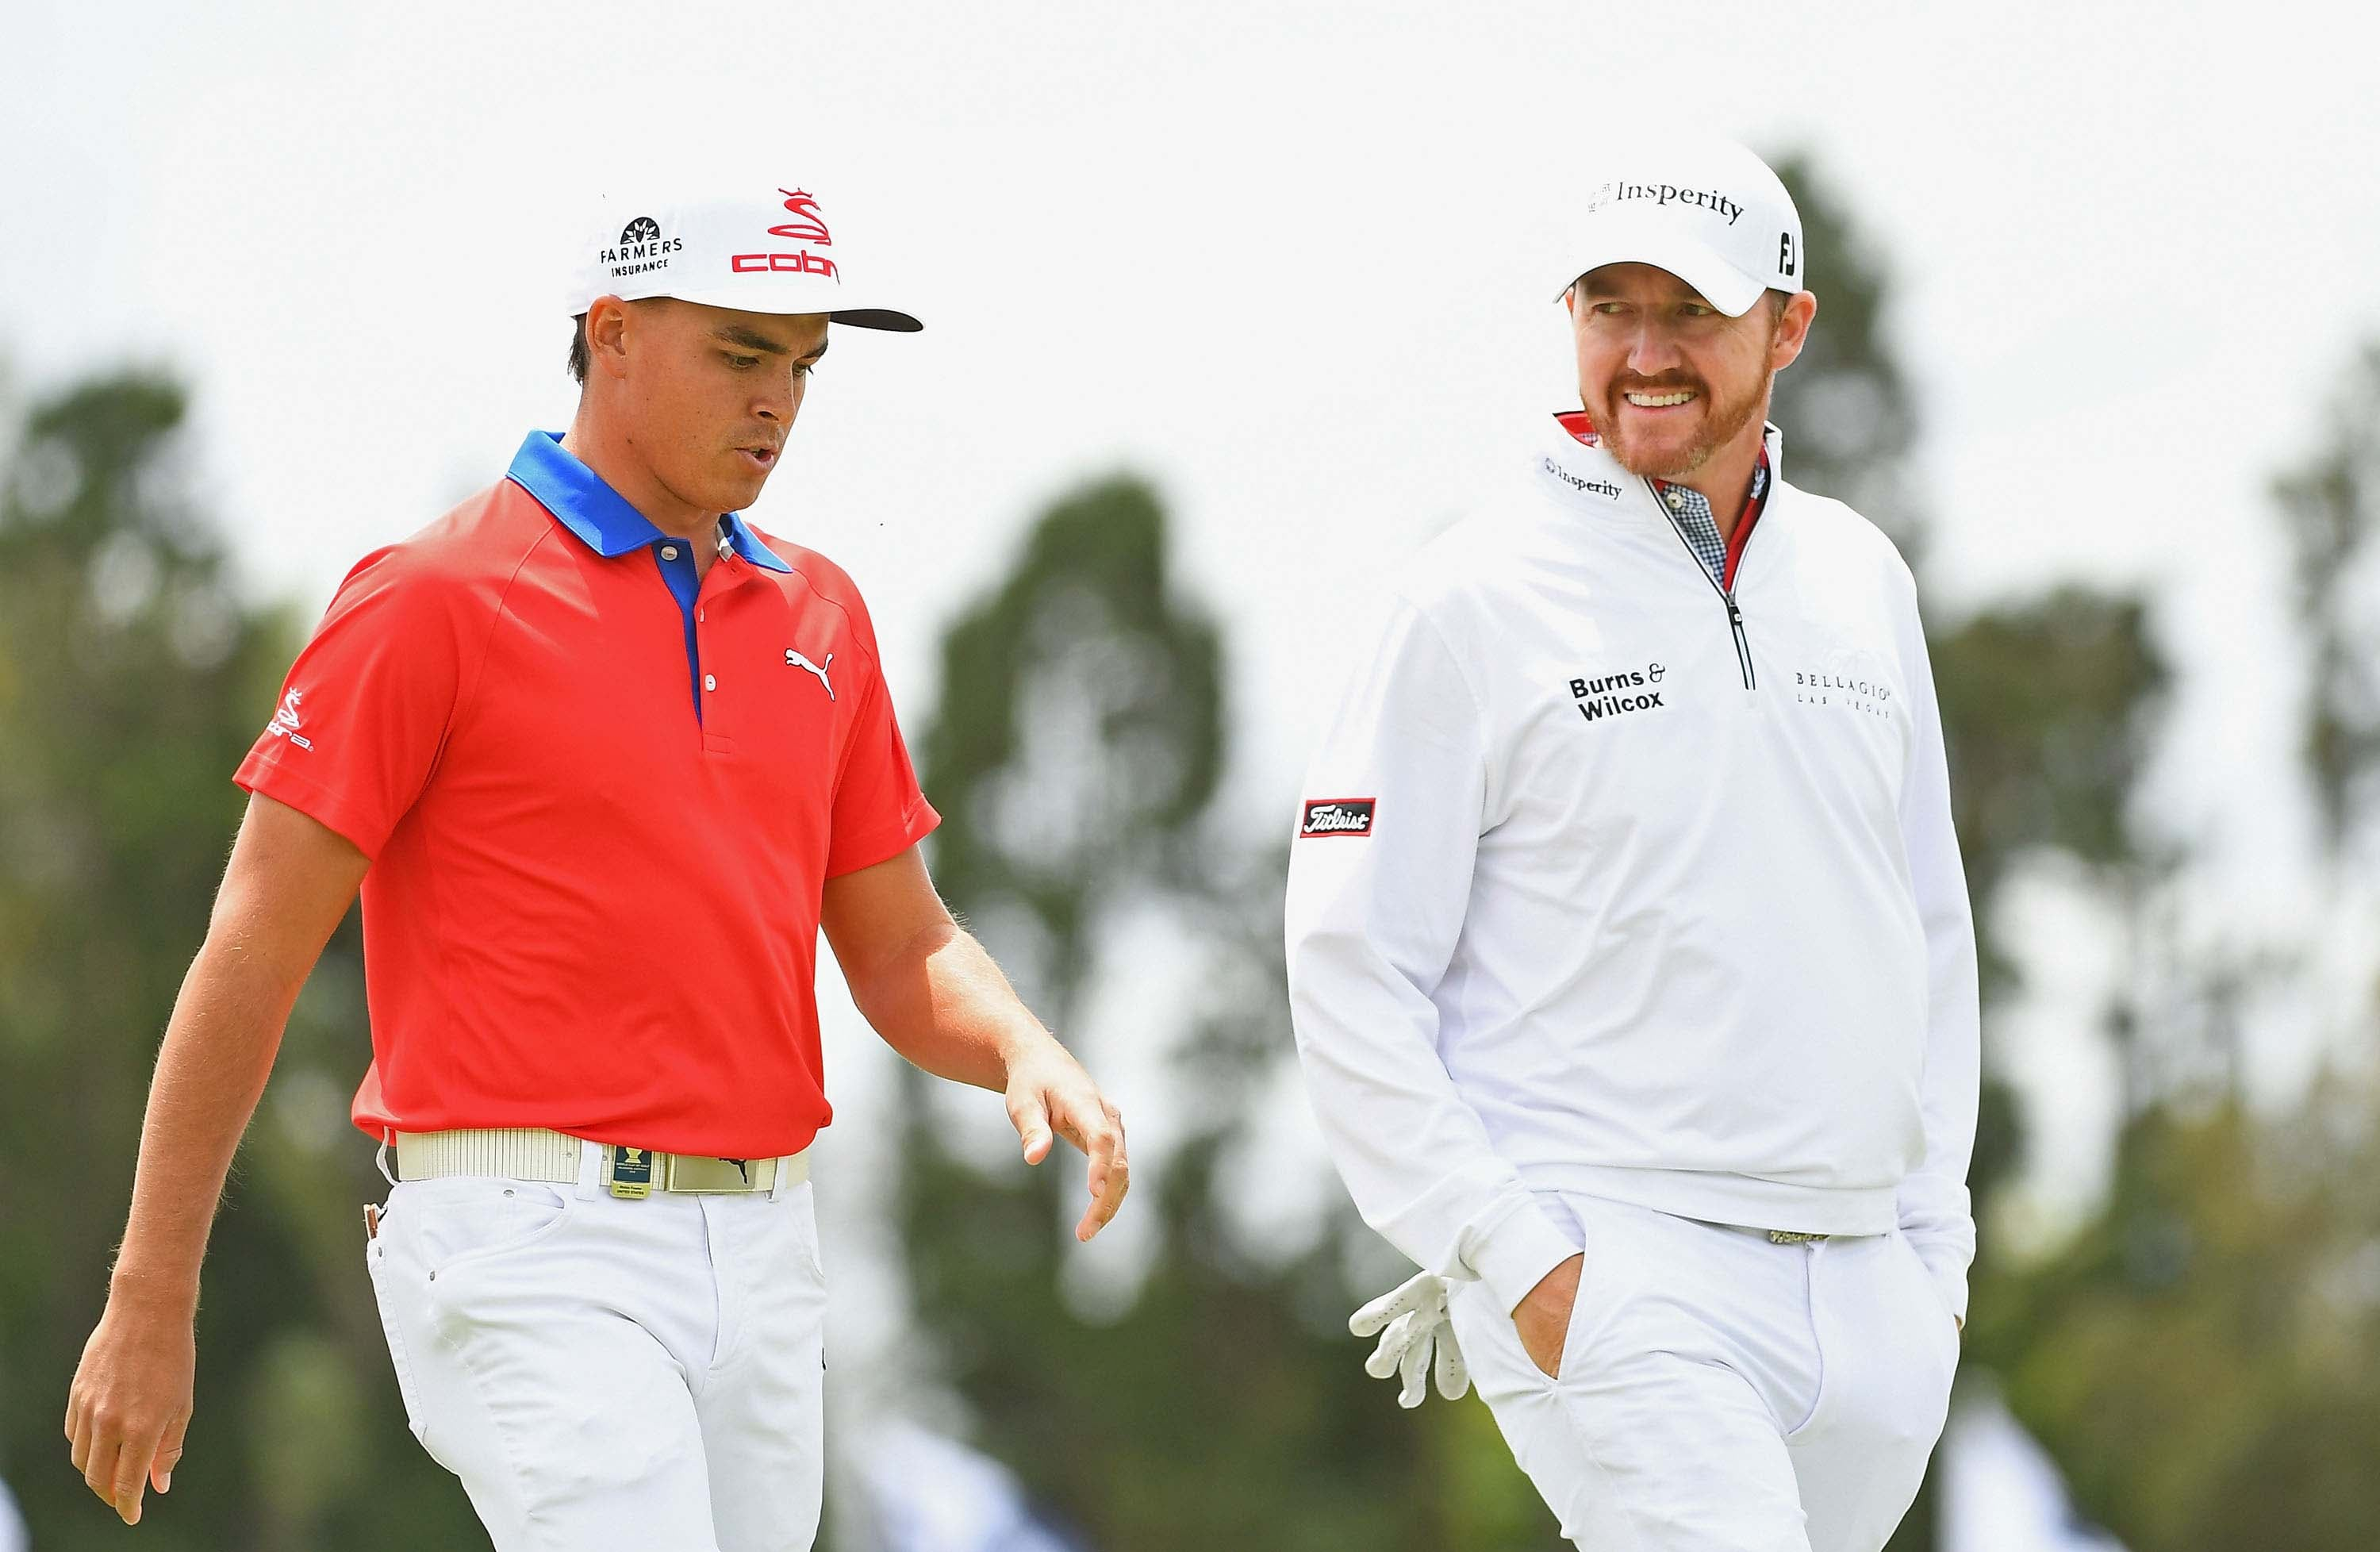 Rickie Fowler and Jimmy Walker